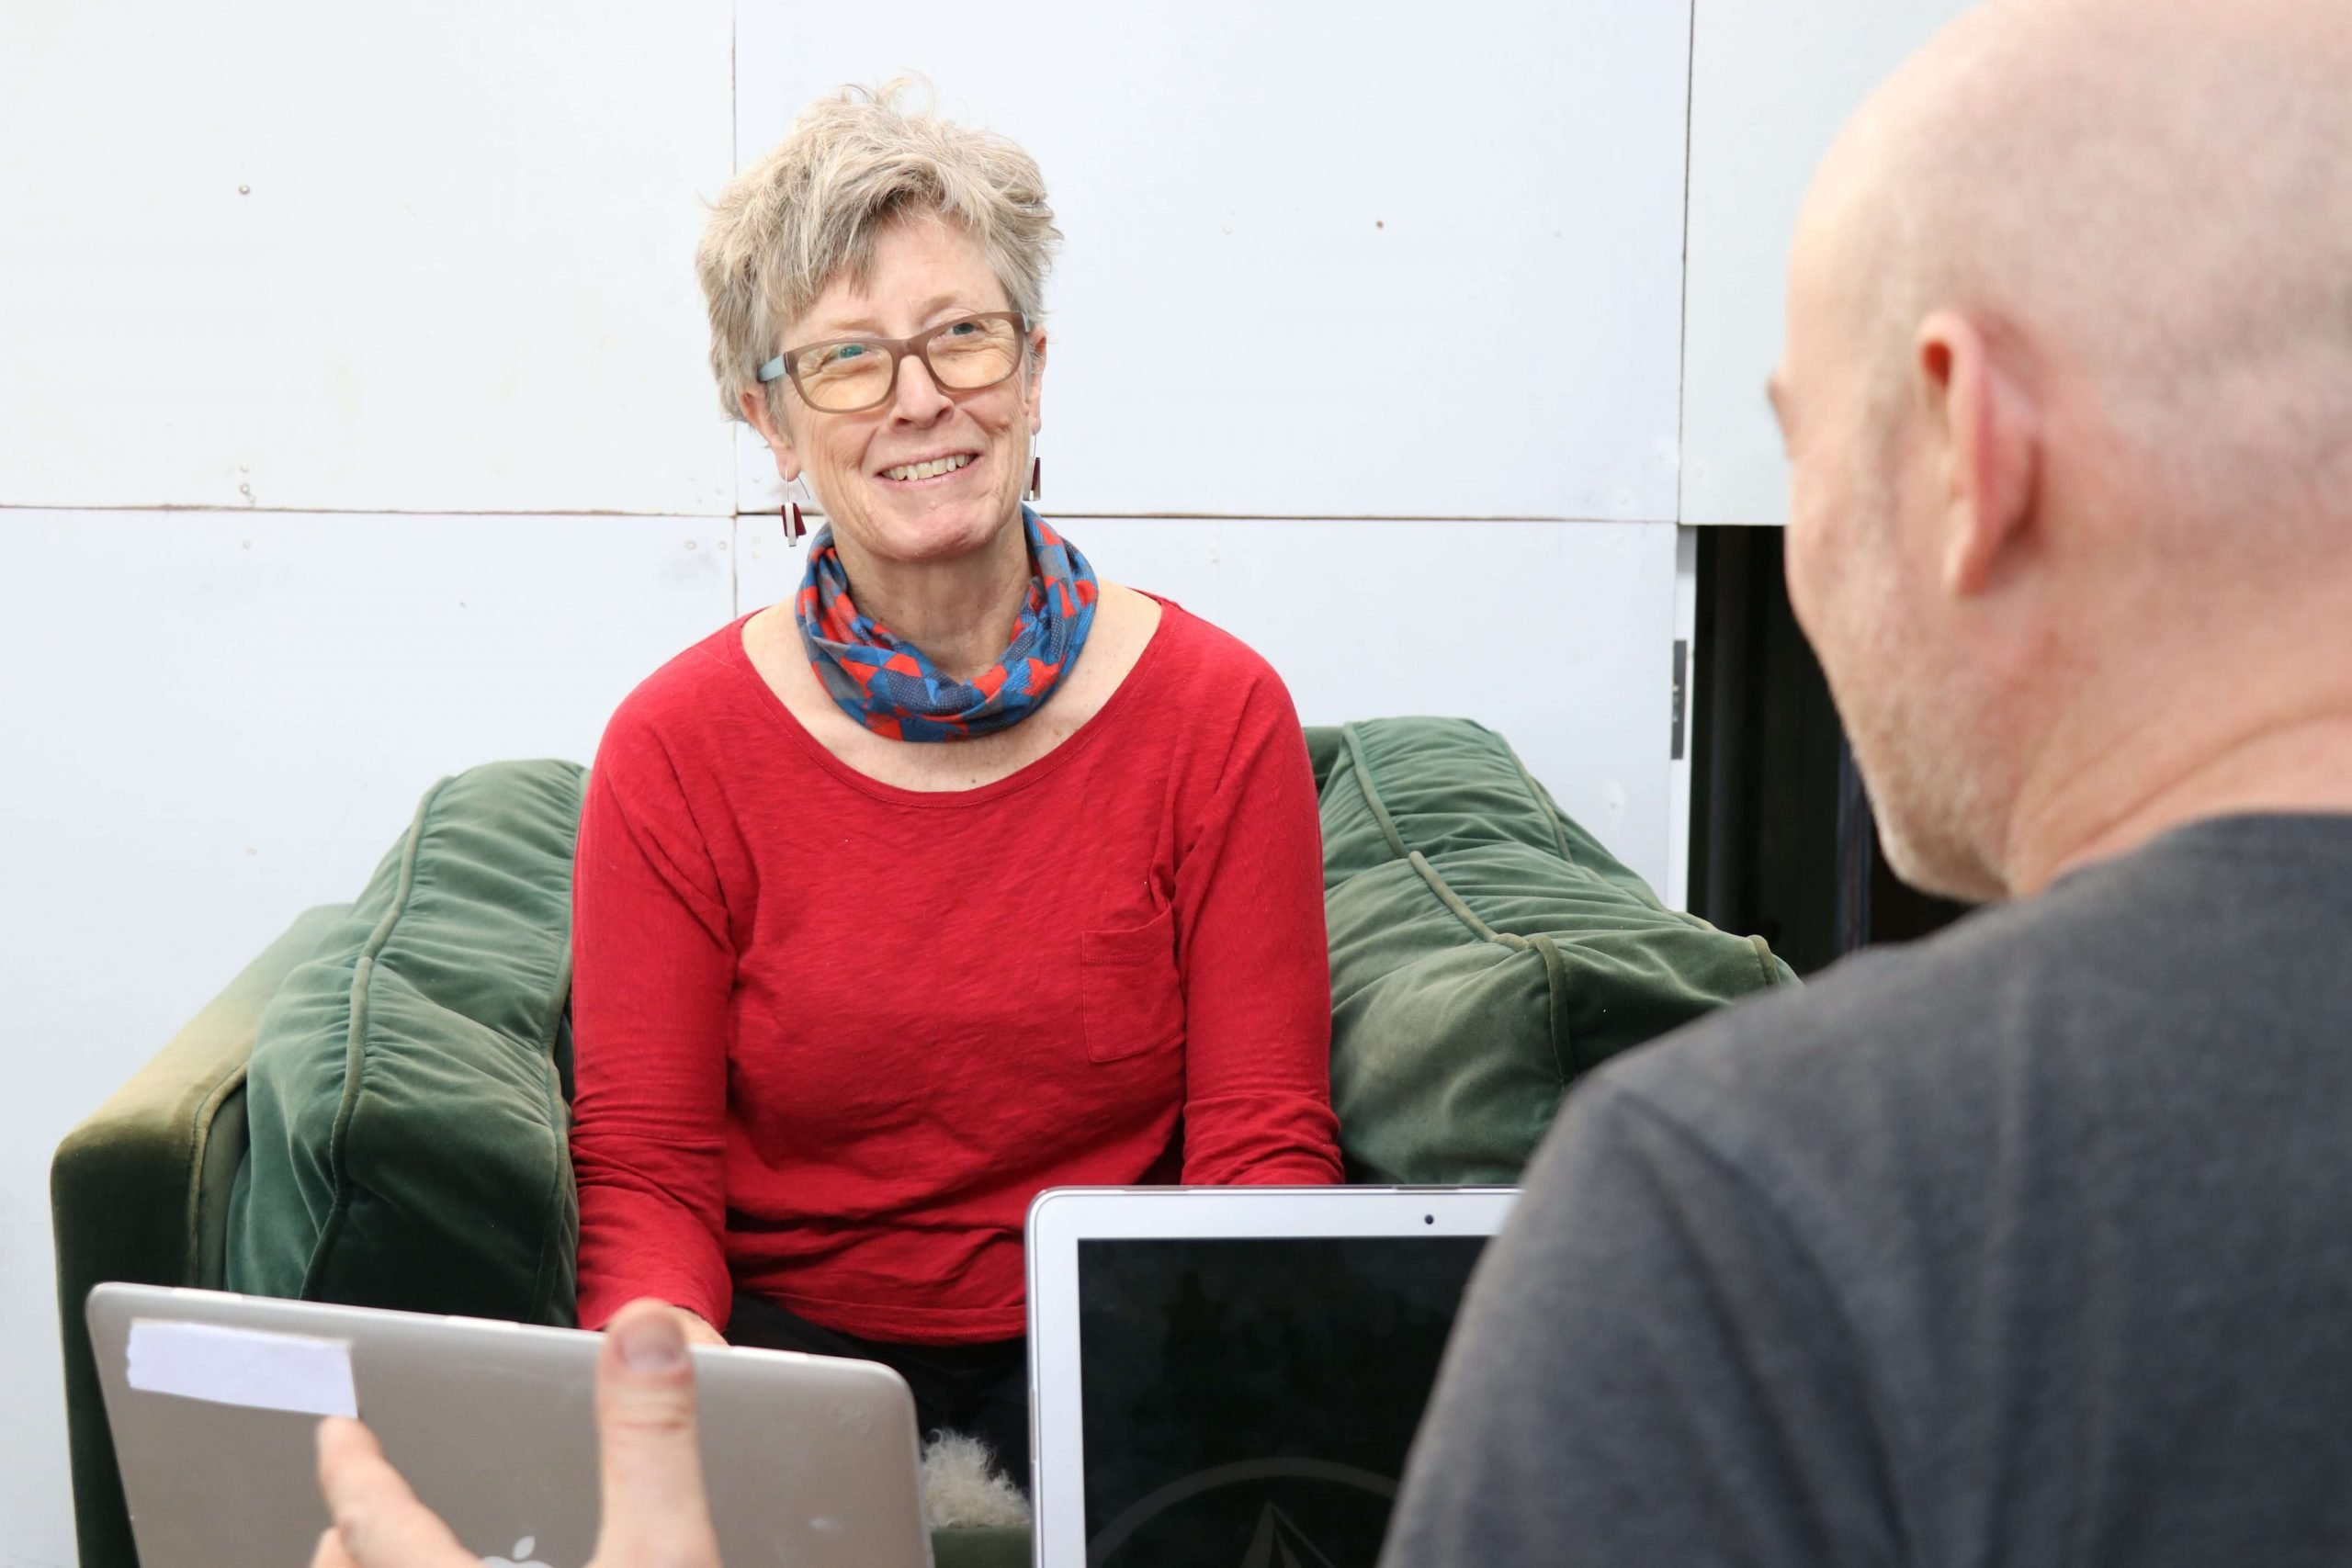 Linda Magson, Clinical Supervisor for Counsellors and Psychotherapists wearing a red sweater and smiling, sitting on a green couch in front of a bald man who is showing her something on a grey notebook computer